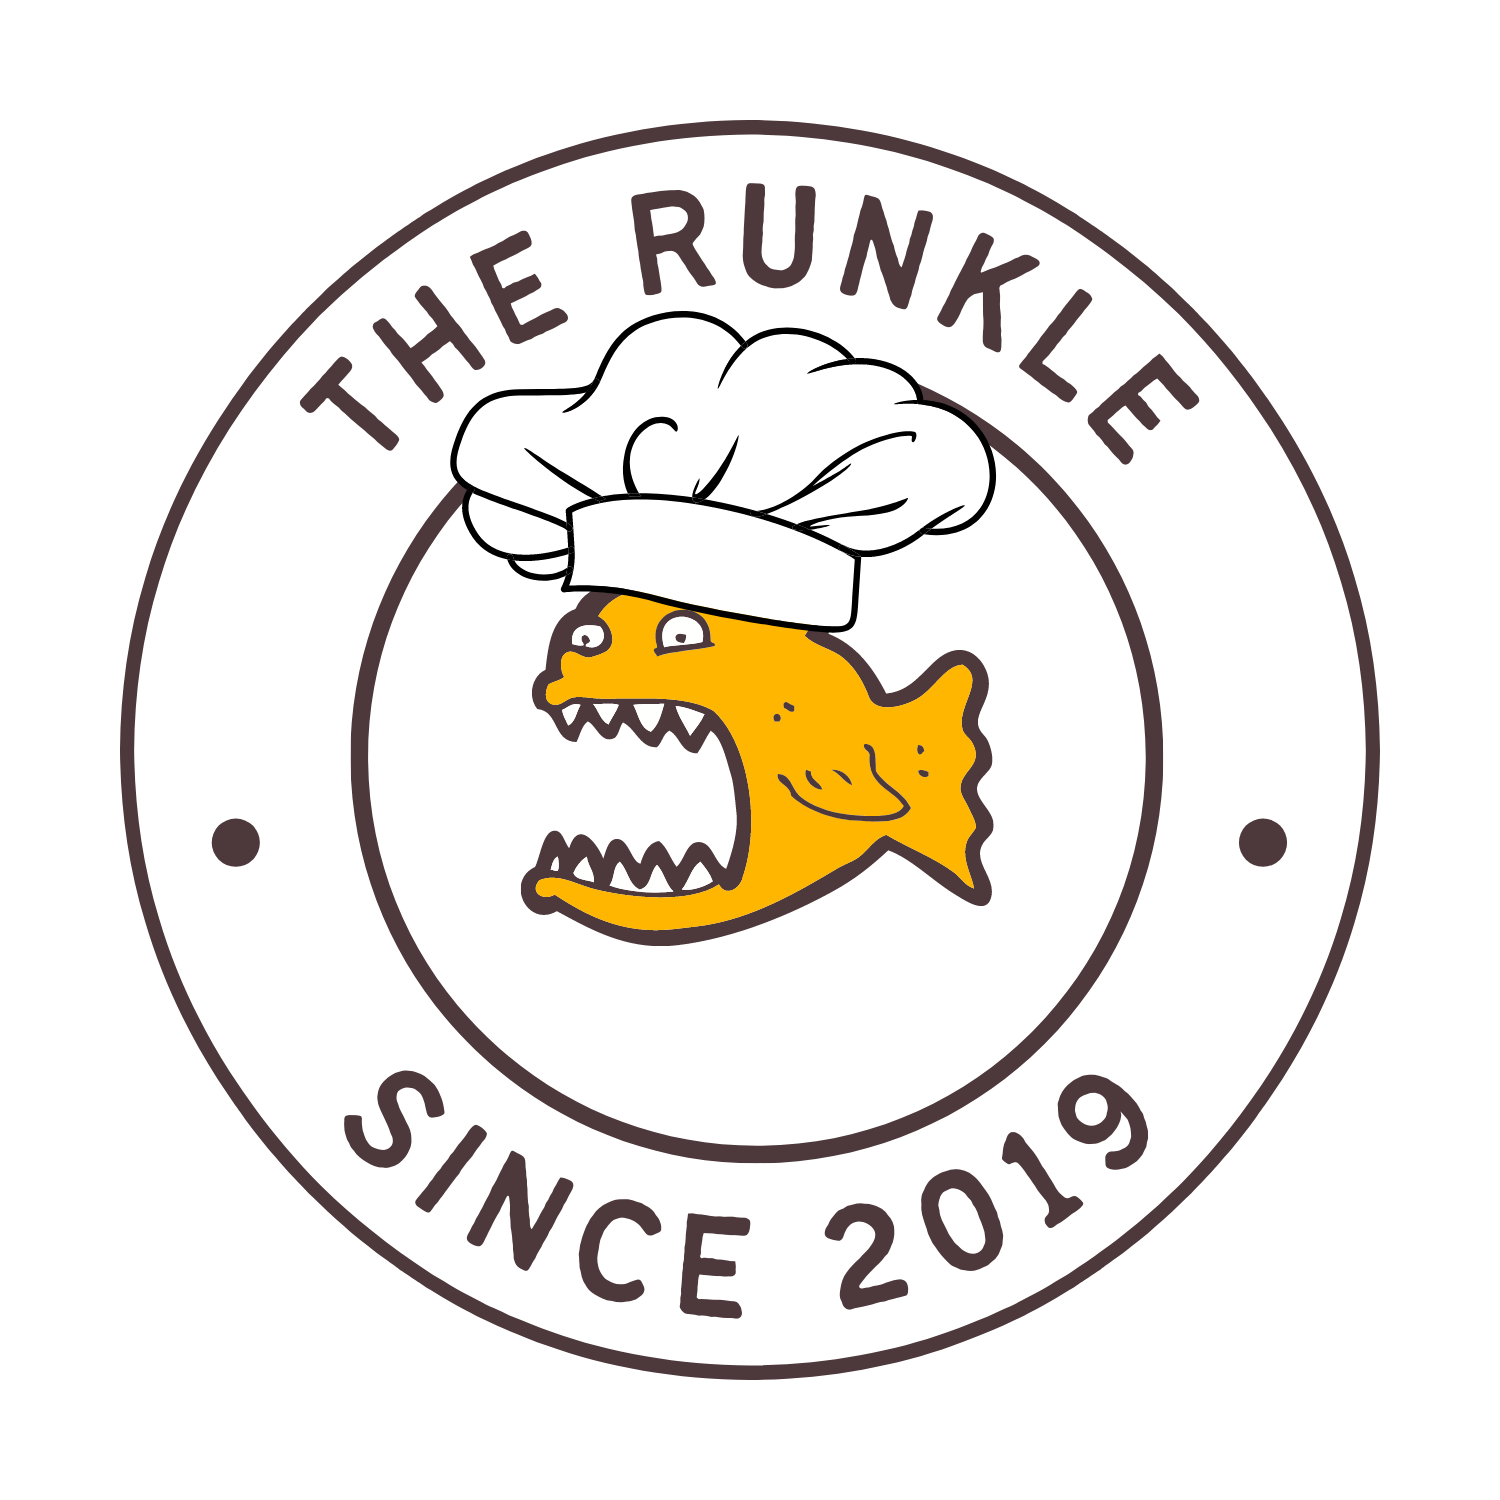 The Runkle